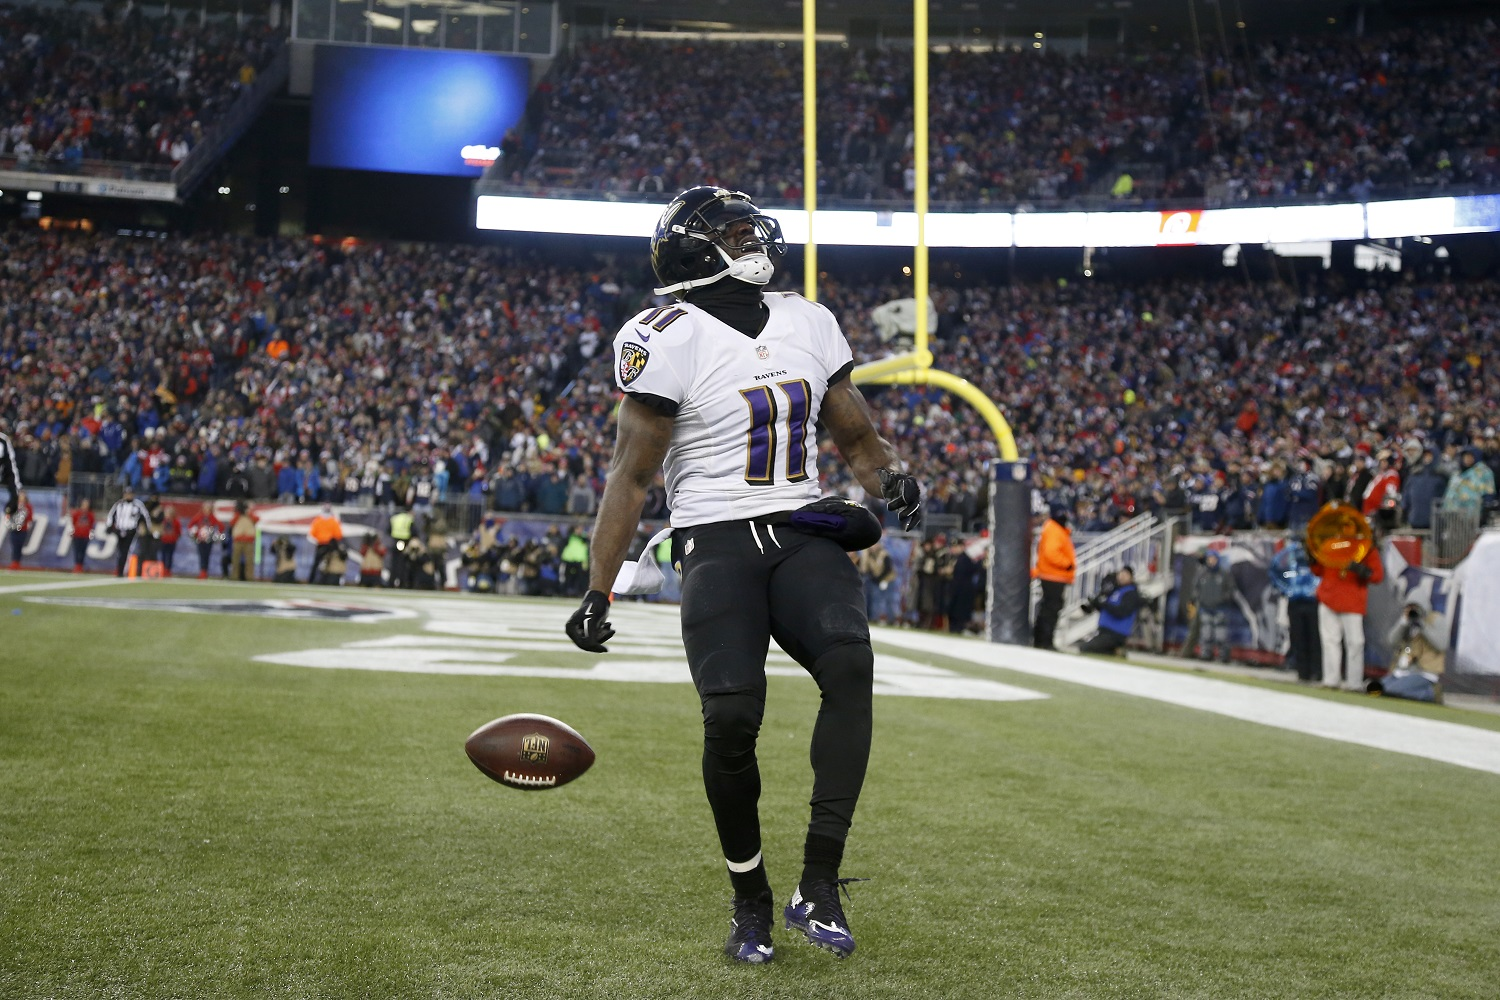 Baltimore Ravens wide receiver Kamar Aiken (11) celebrates his touchdown catch in the first half of an NFL divisional playoff football game against the New England Patriots Saturday, Jan. 10, 2015, in Foxborough, Mass. (AP Photo/Elise Amendola)